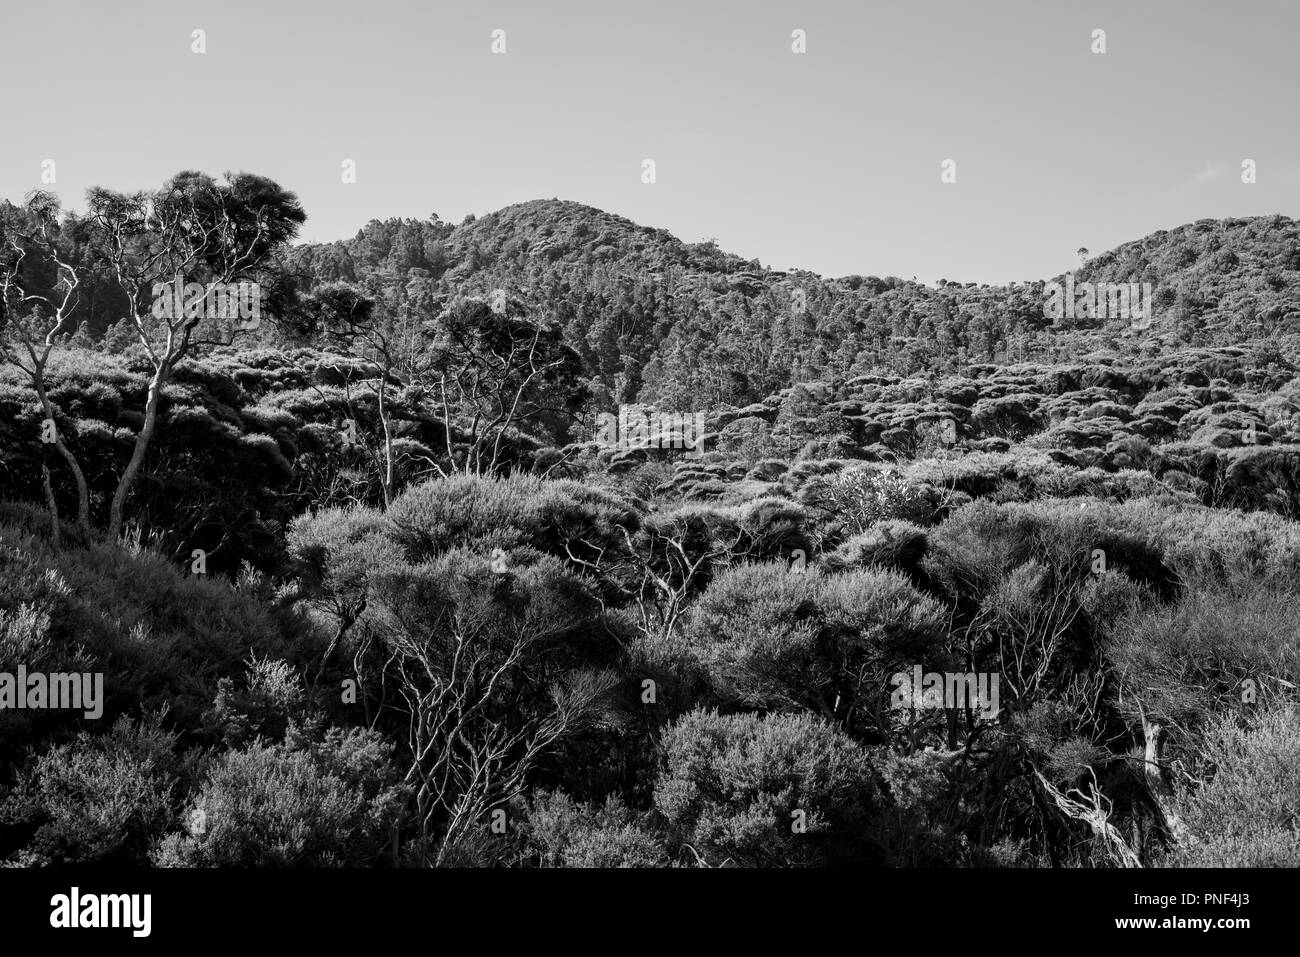 Auckland region new zealand landscape of native forest stock image